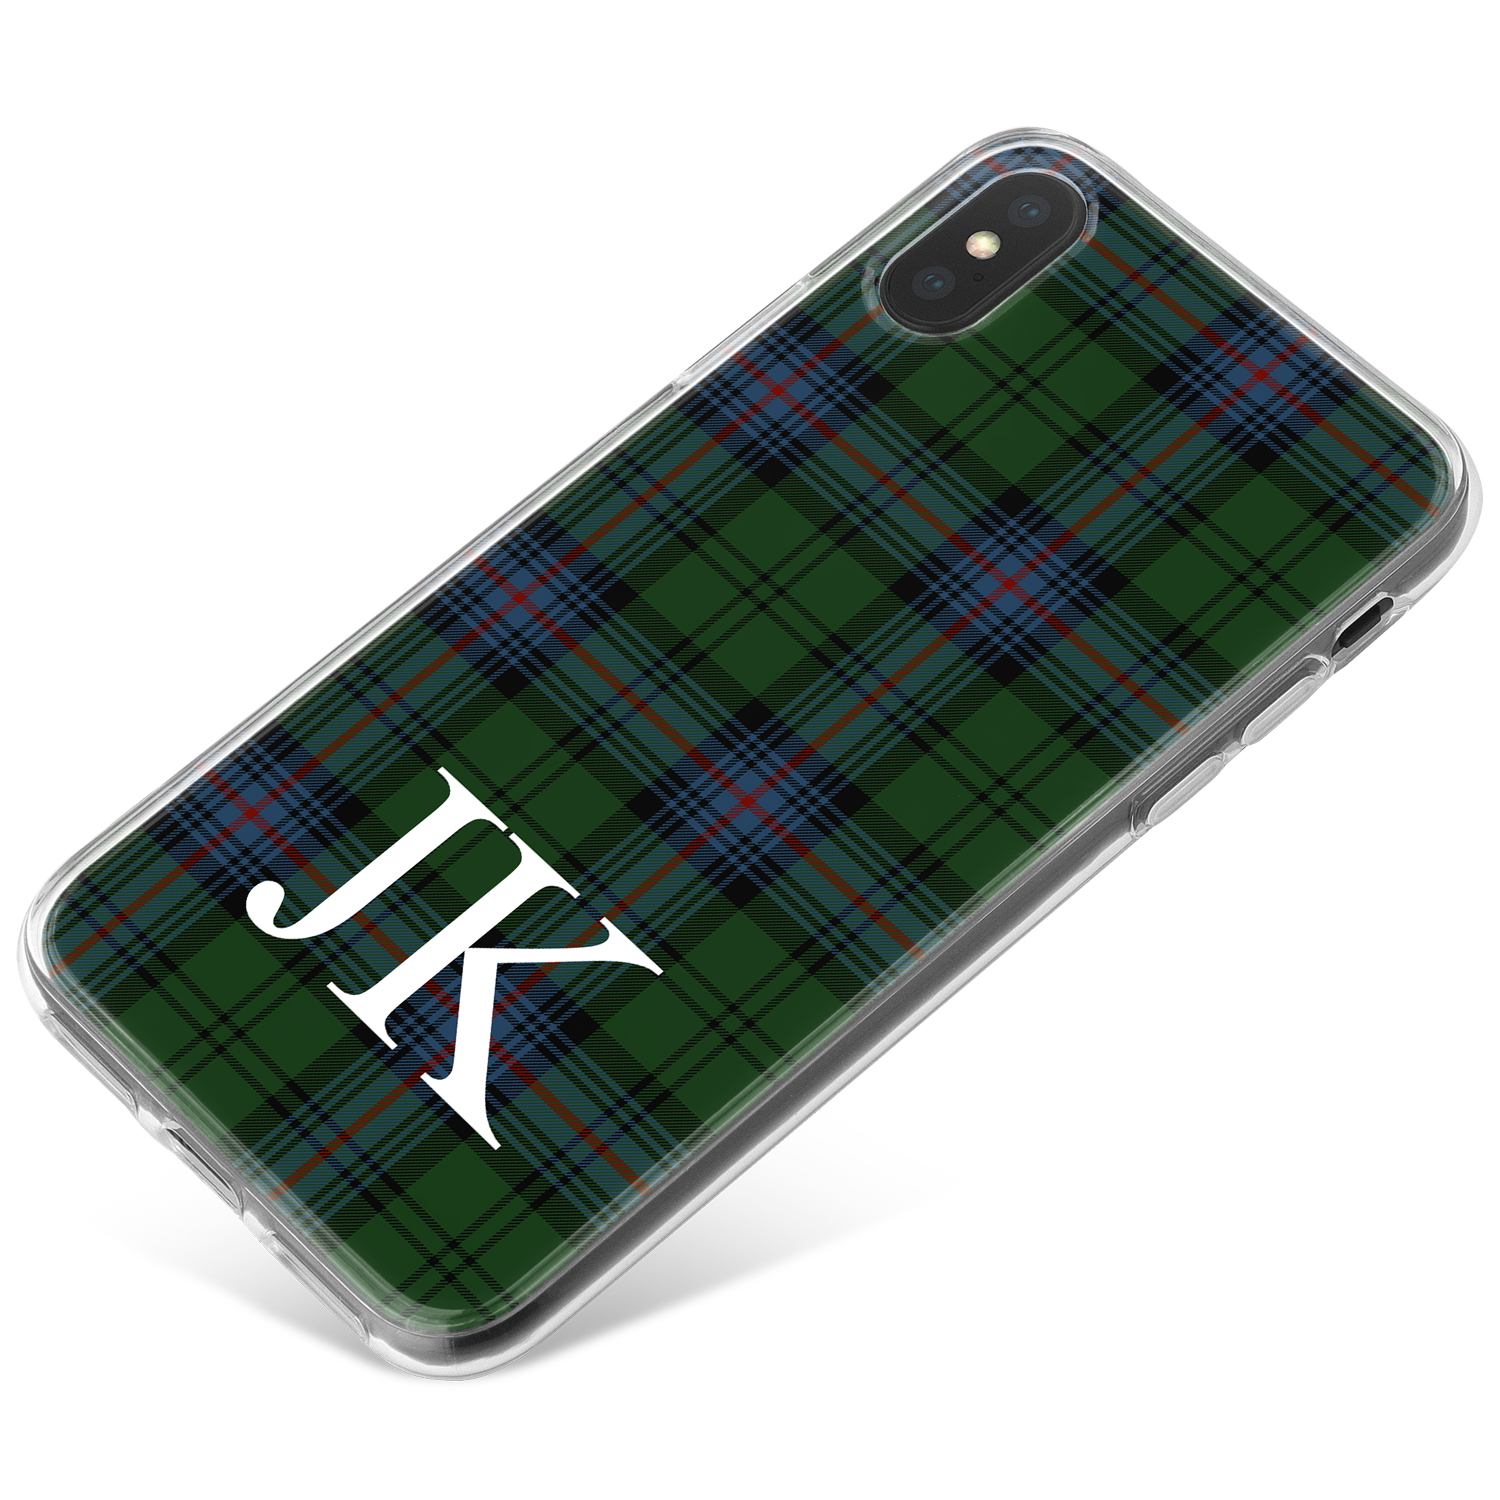 Green and Blue Tartan Pattern phone case available for all major manufacturers including Apple, Samsung & Sony